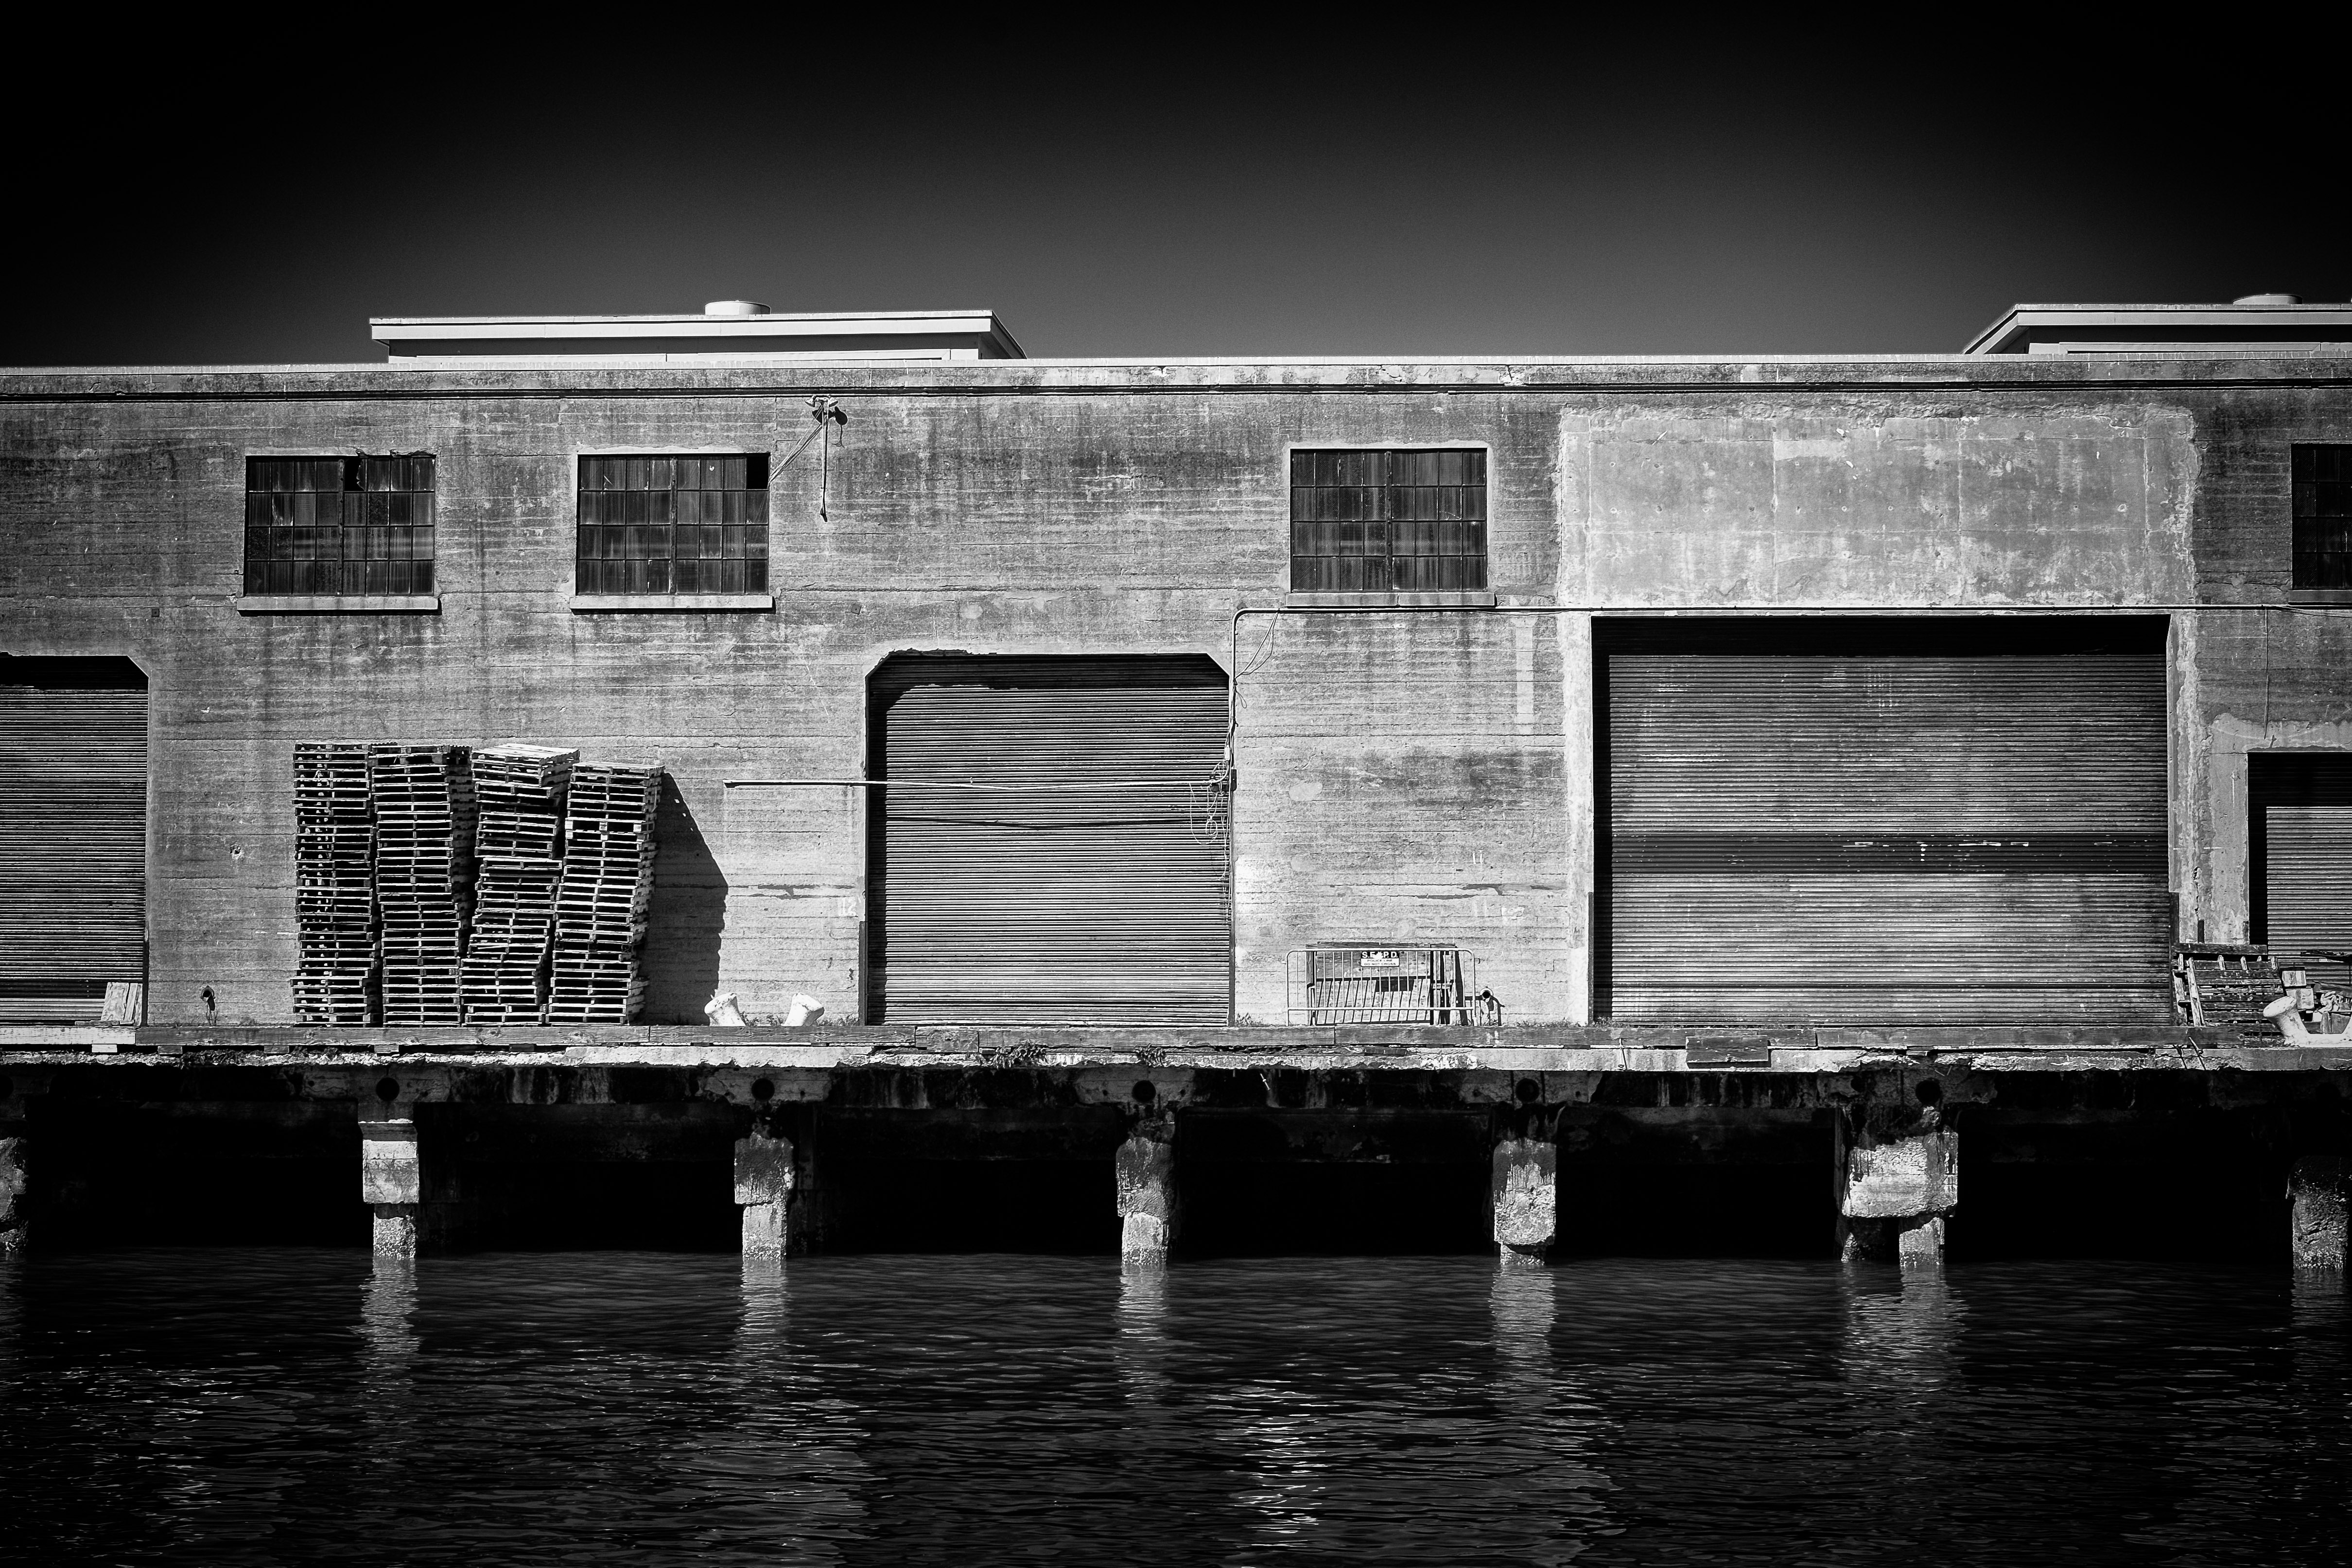 Storage by the sea